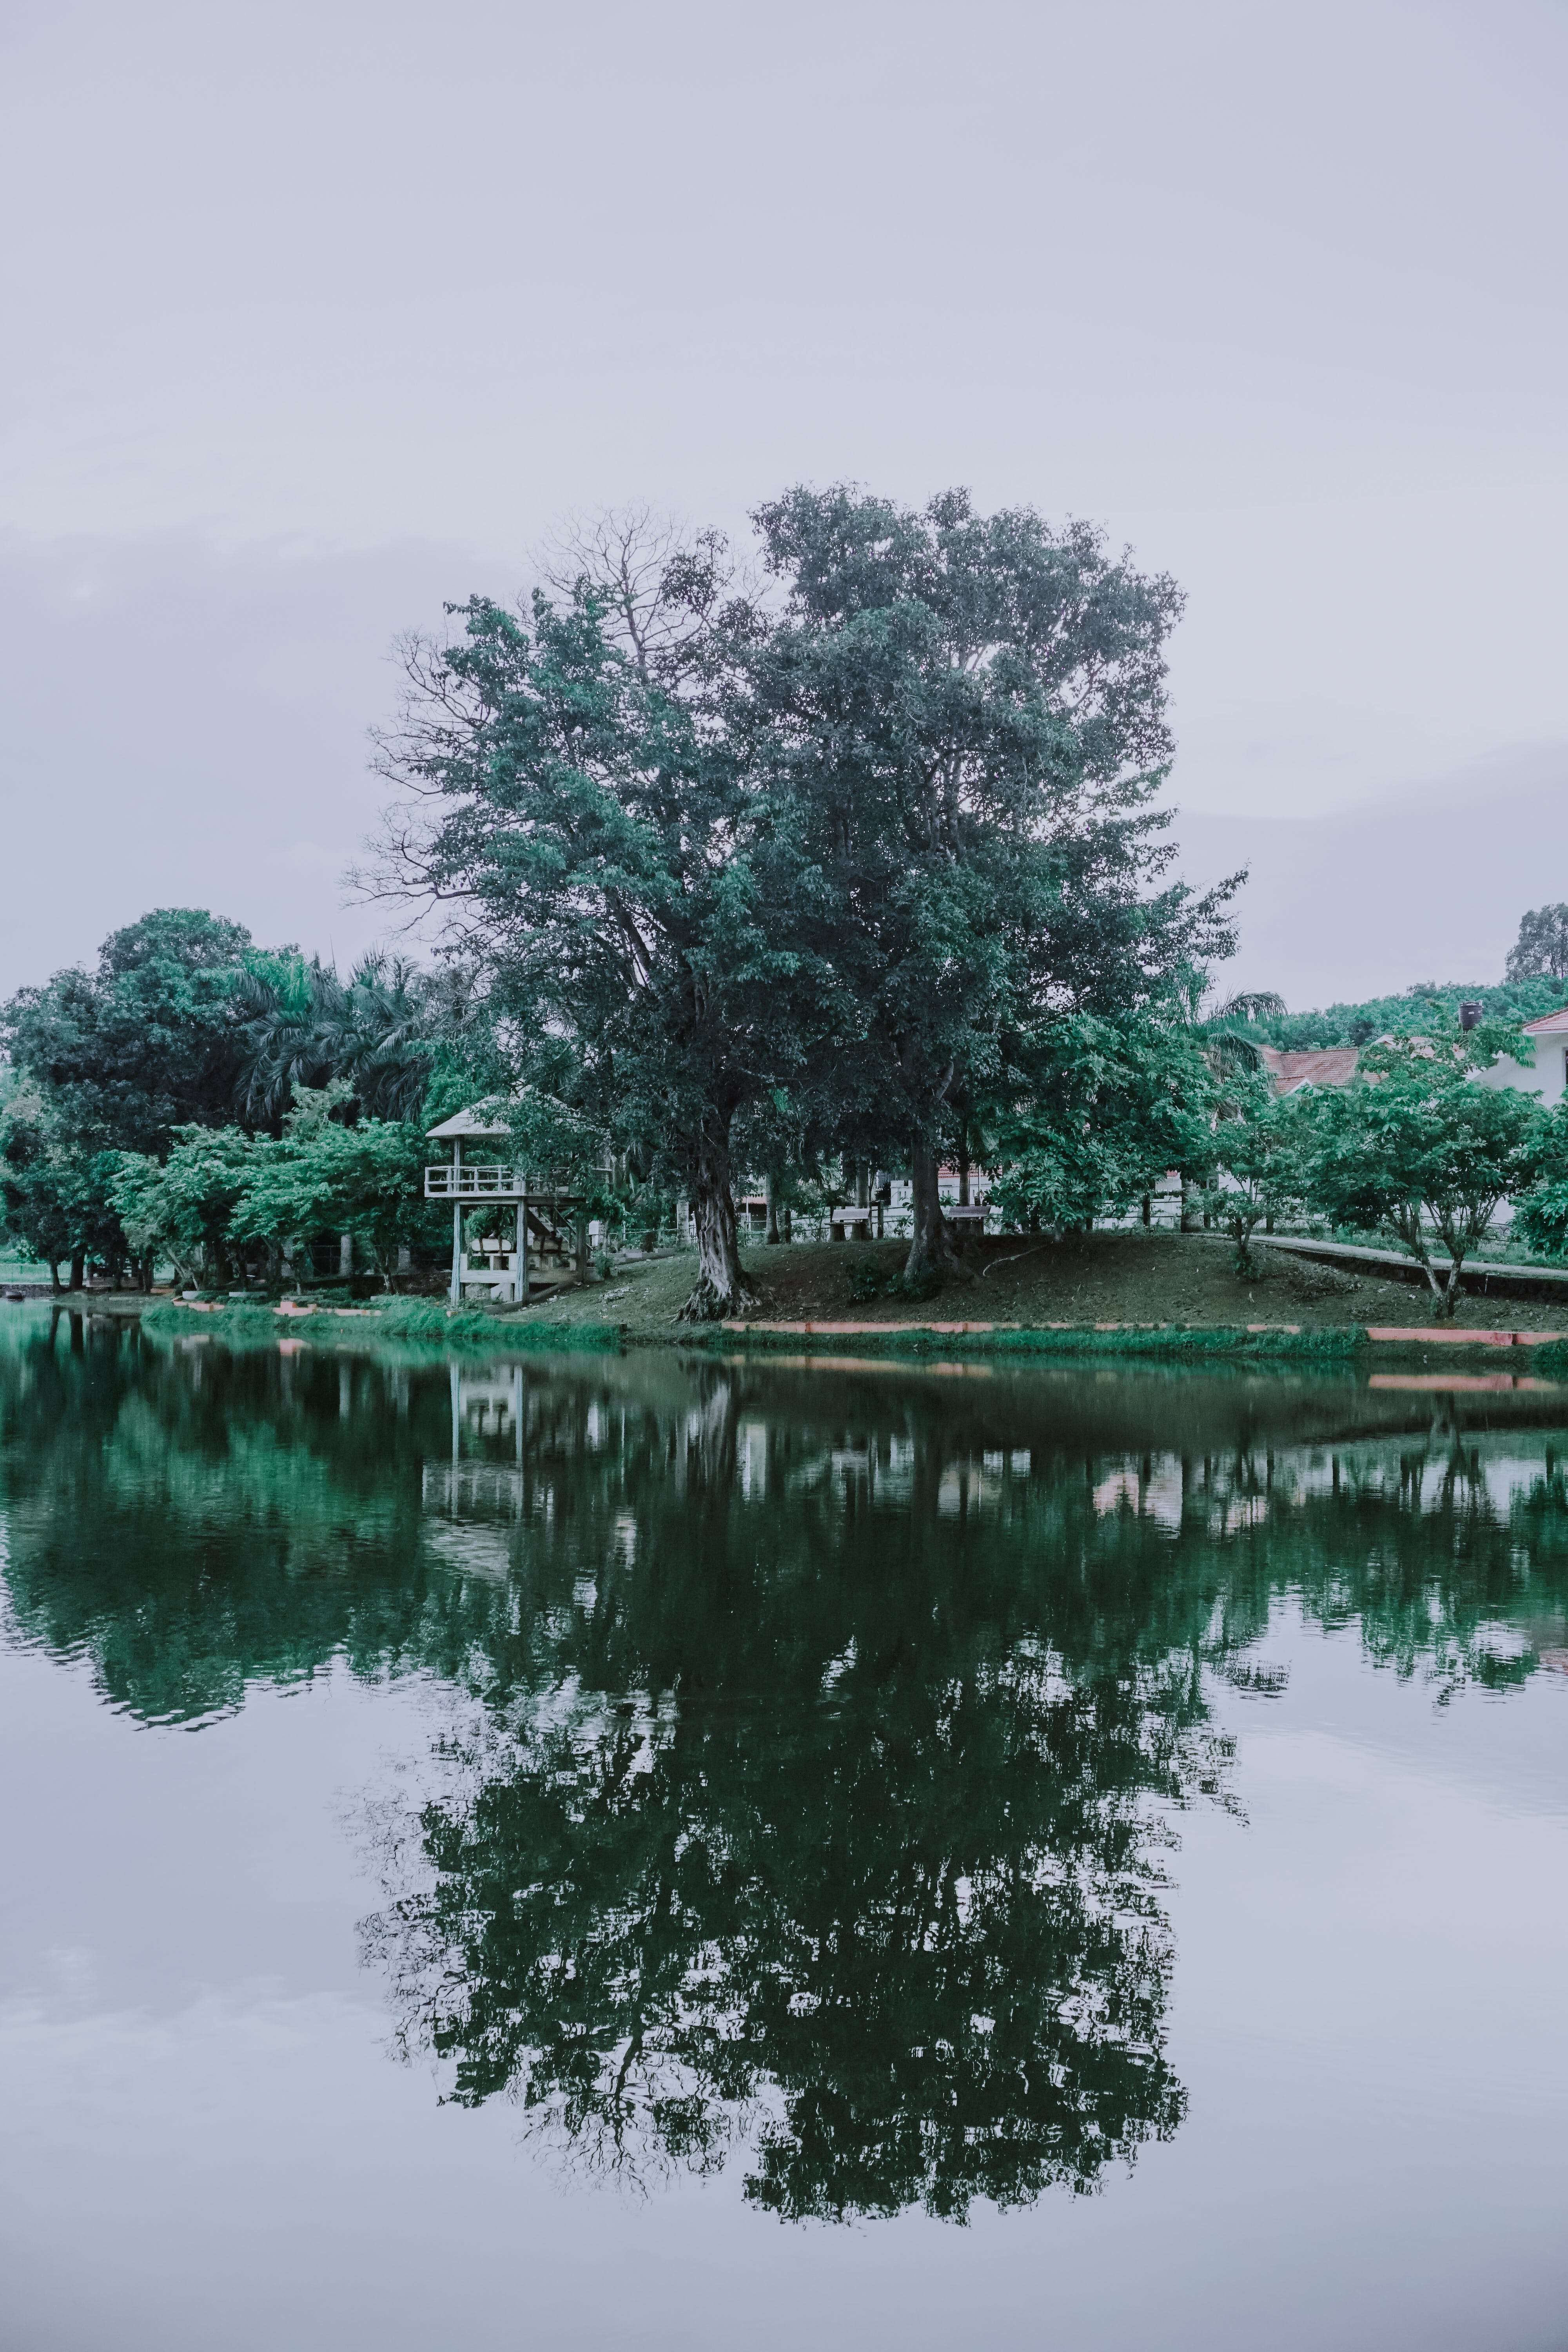 Green Trees Beside the River Under Cloudy Sky